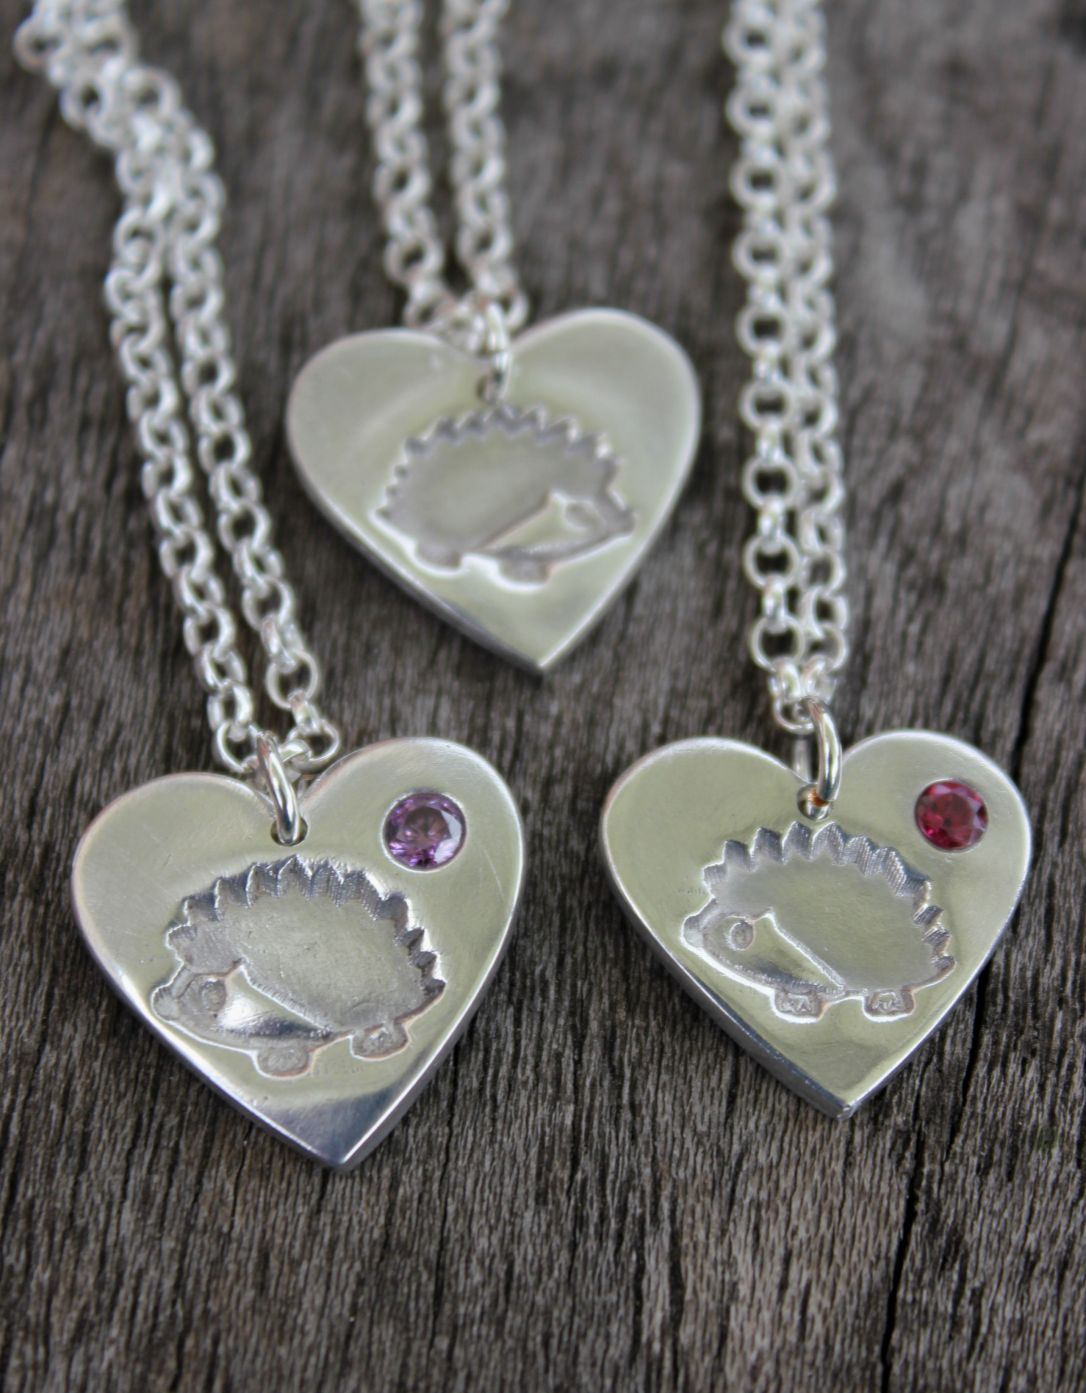 Hedgehog heart pendants, hedgehog heart necklace with inset birthstones, birthstone pendant, birthstone necklace